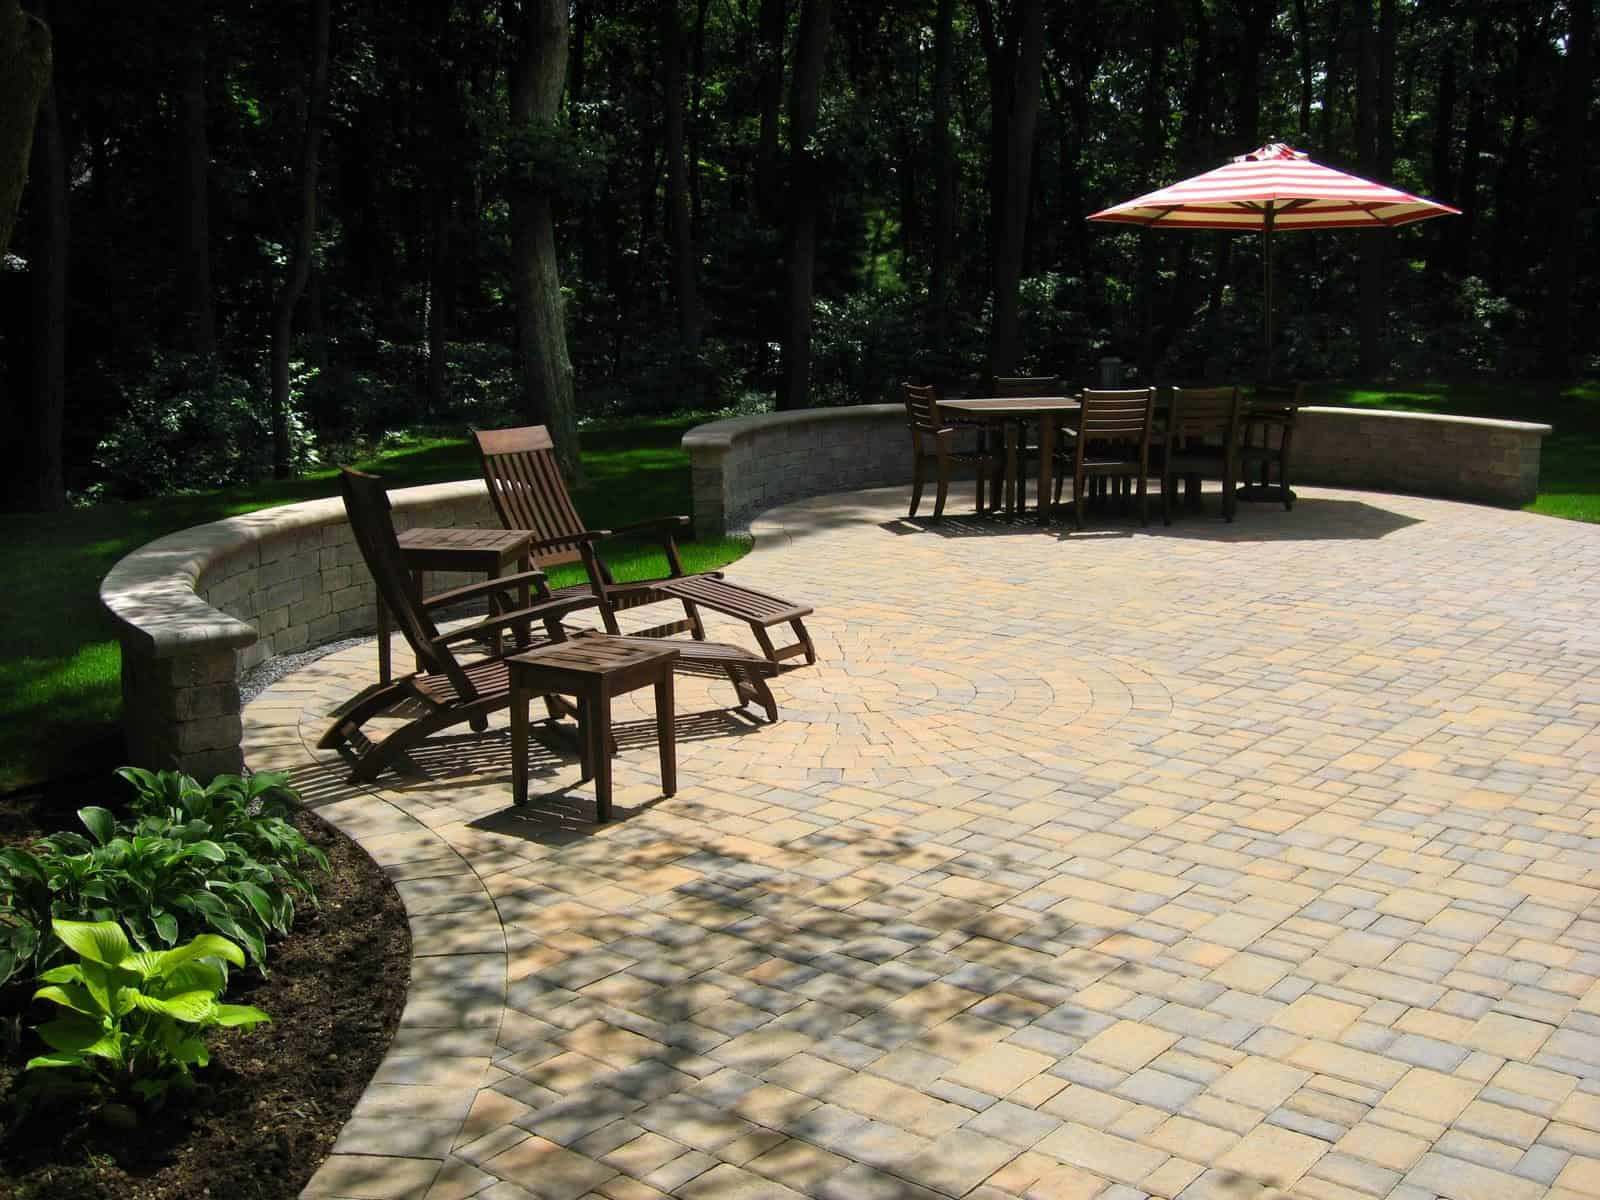 Paver Patio - Cambridge Ledgestone-Toffee/Onyx Paver Patio - Random Pattern with Circle Kit - Unilock Brussells Seat Wall - Onyx - Dix Hills, Long Island NY